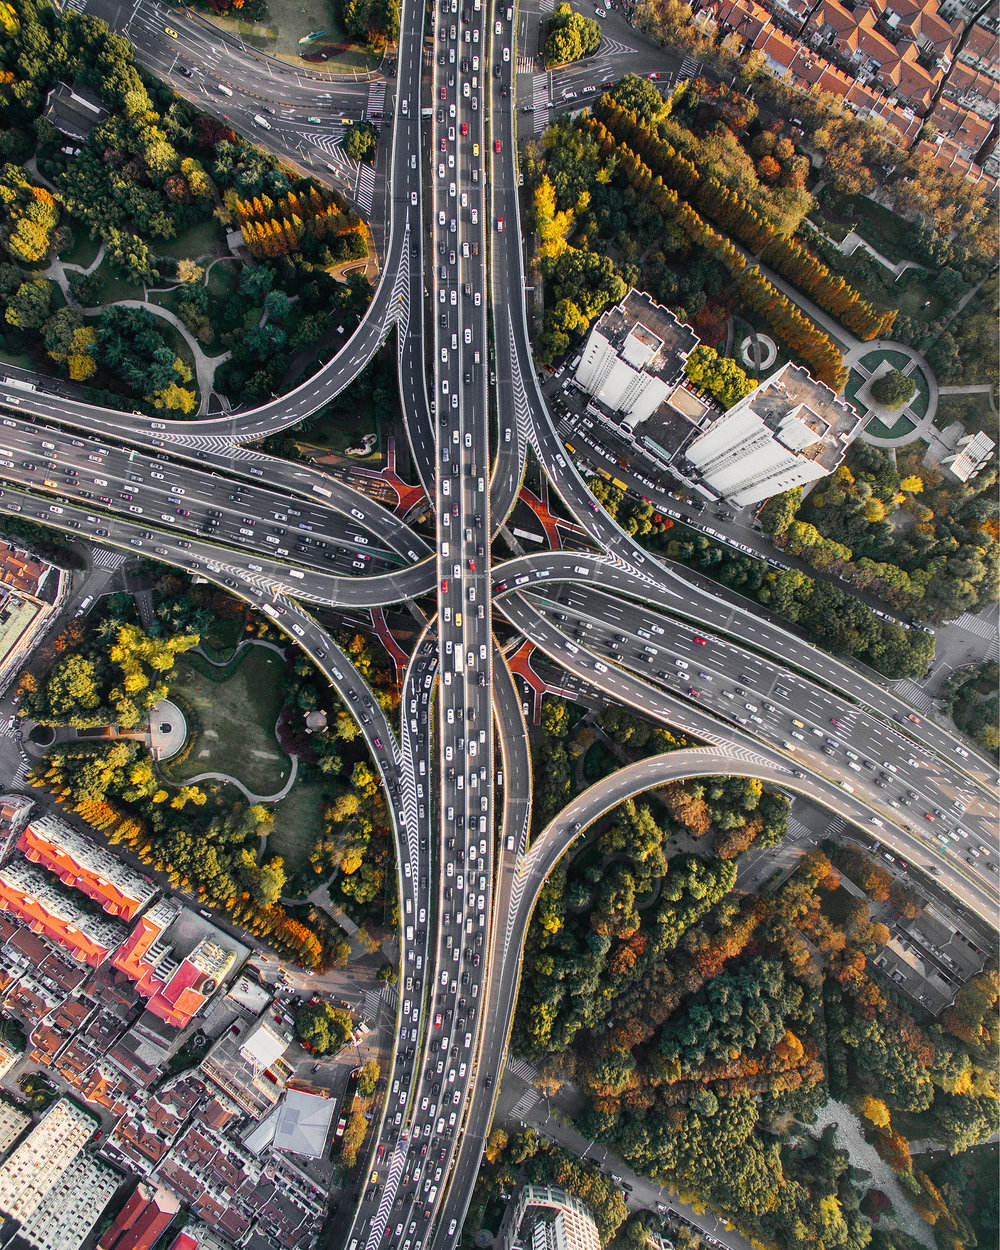 """The Puxi Viaduct in Shanghai, China, is one of the largest and busiest interchanges in the world. Its five levels of bridges connect two of the city's busiest highways, Nanbei Road and Yan'an Road, allowing thousands of vehicles to pass through every hour.  31°13'34.6""""N, 121°27'52.5""""E  Source imagery: Denys Nevozhai"""